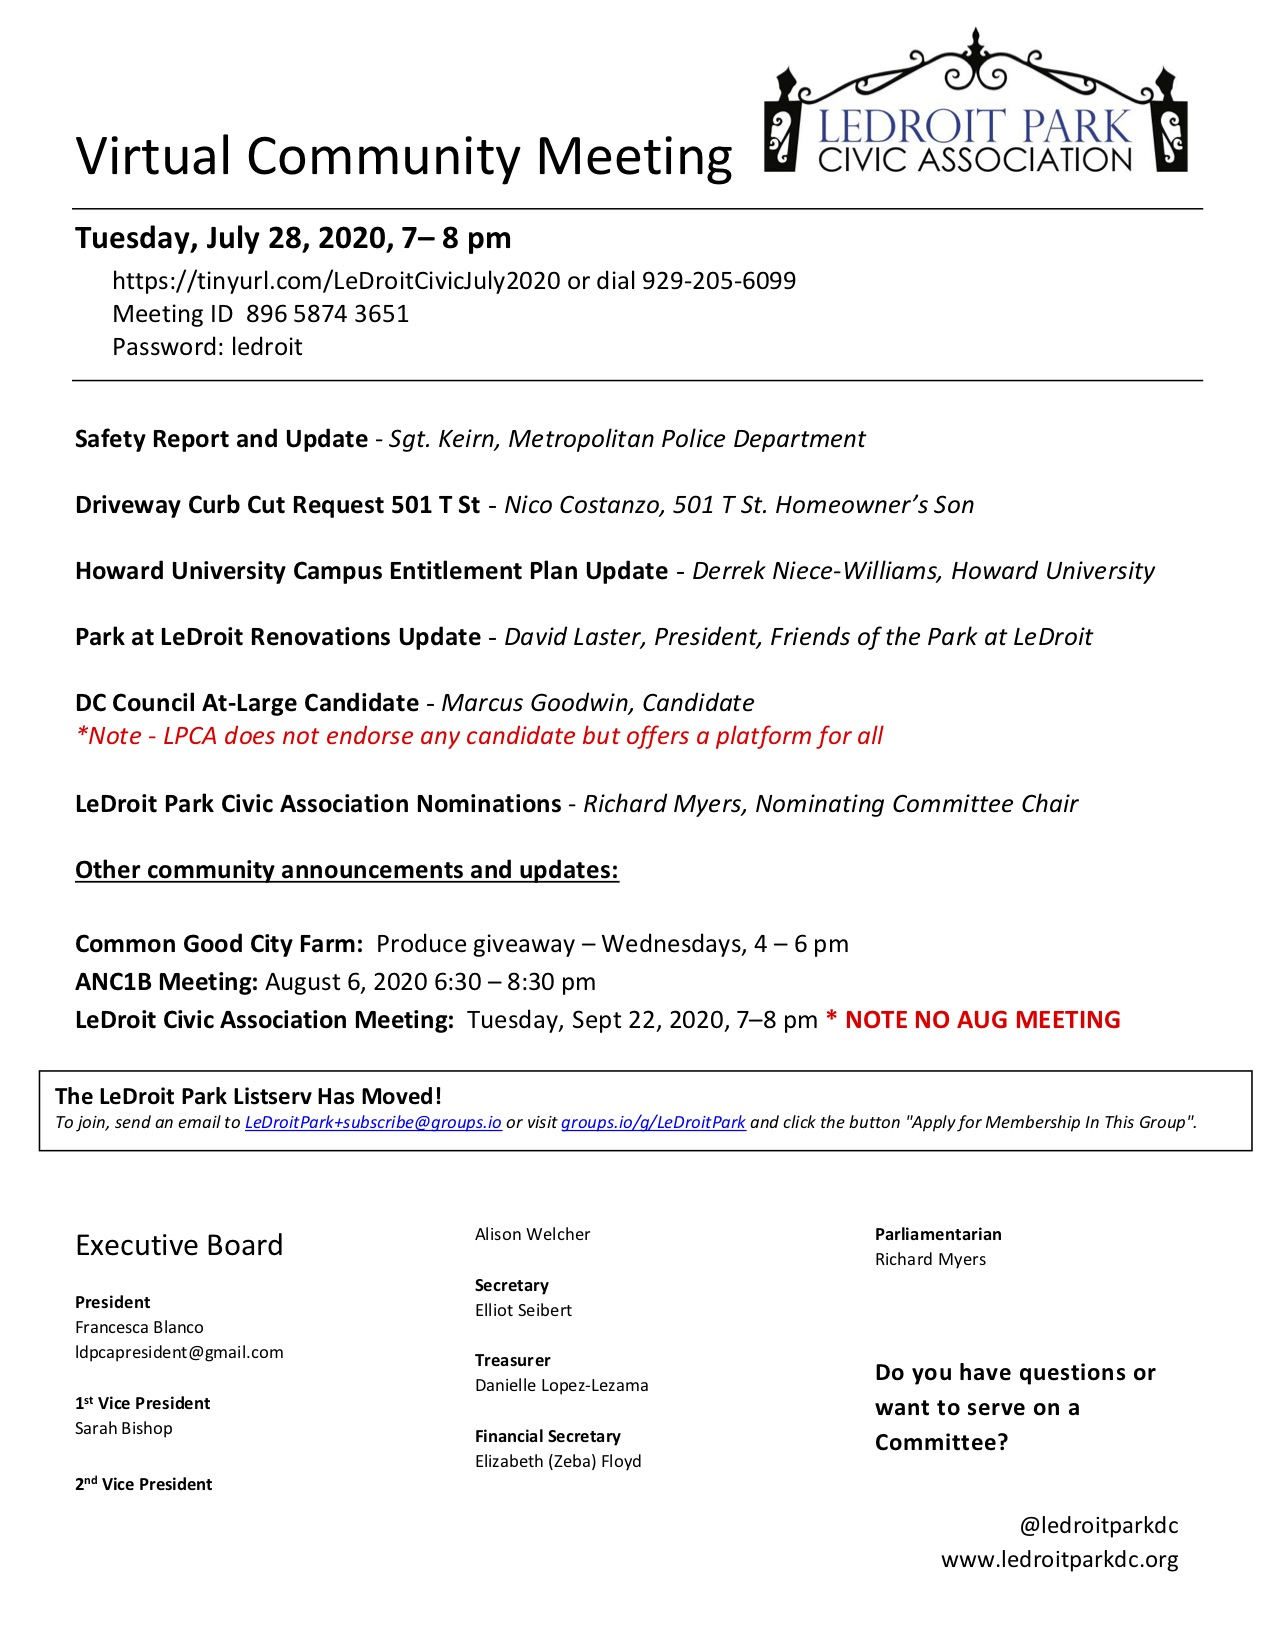 July 2020 LPCA Meeting Agenda (Tuesday, July 28, 2020, 7–8 PM)